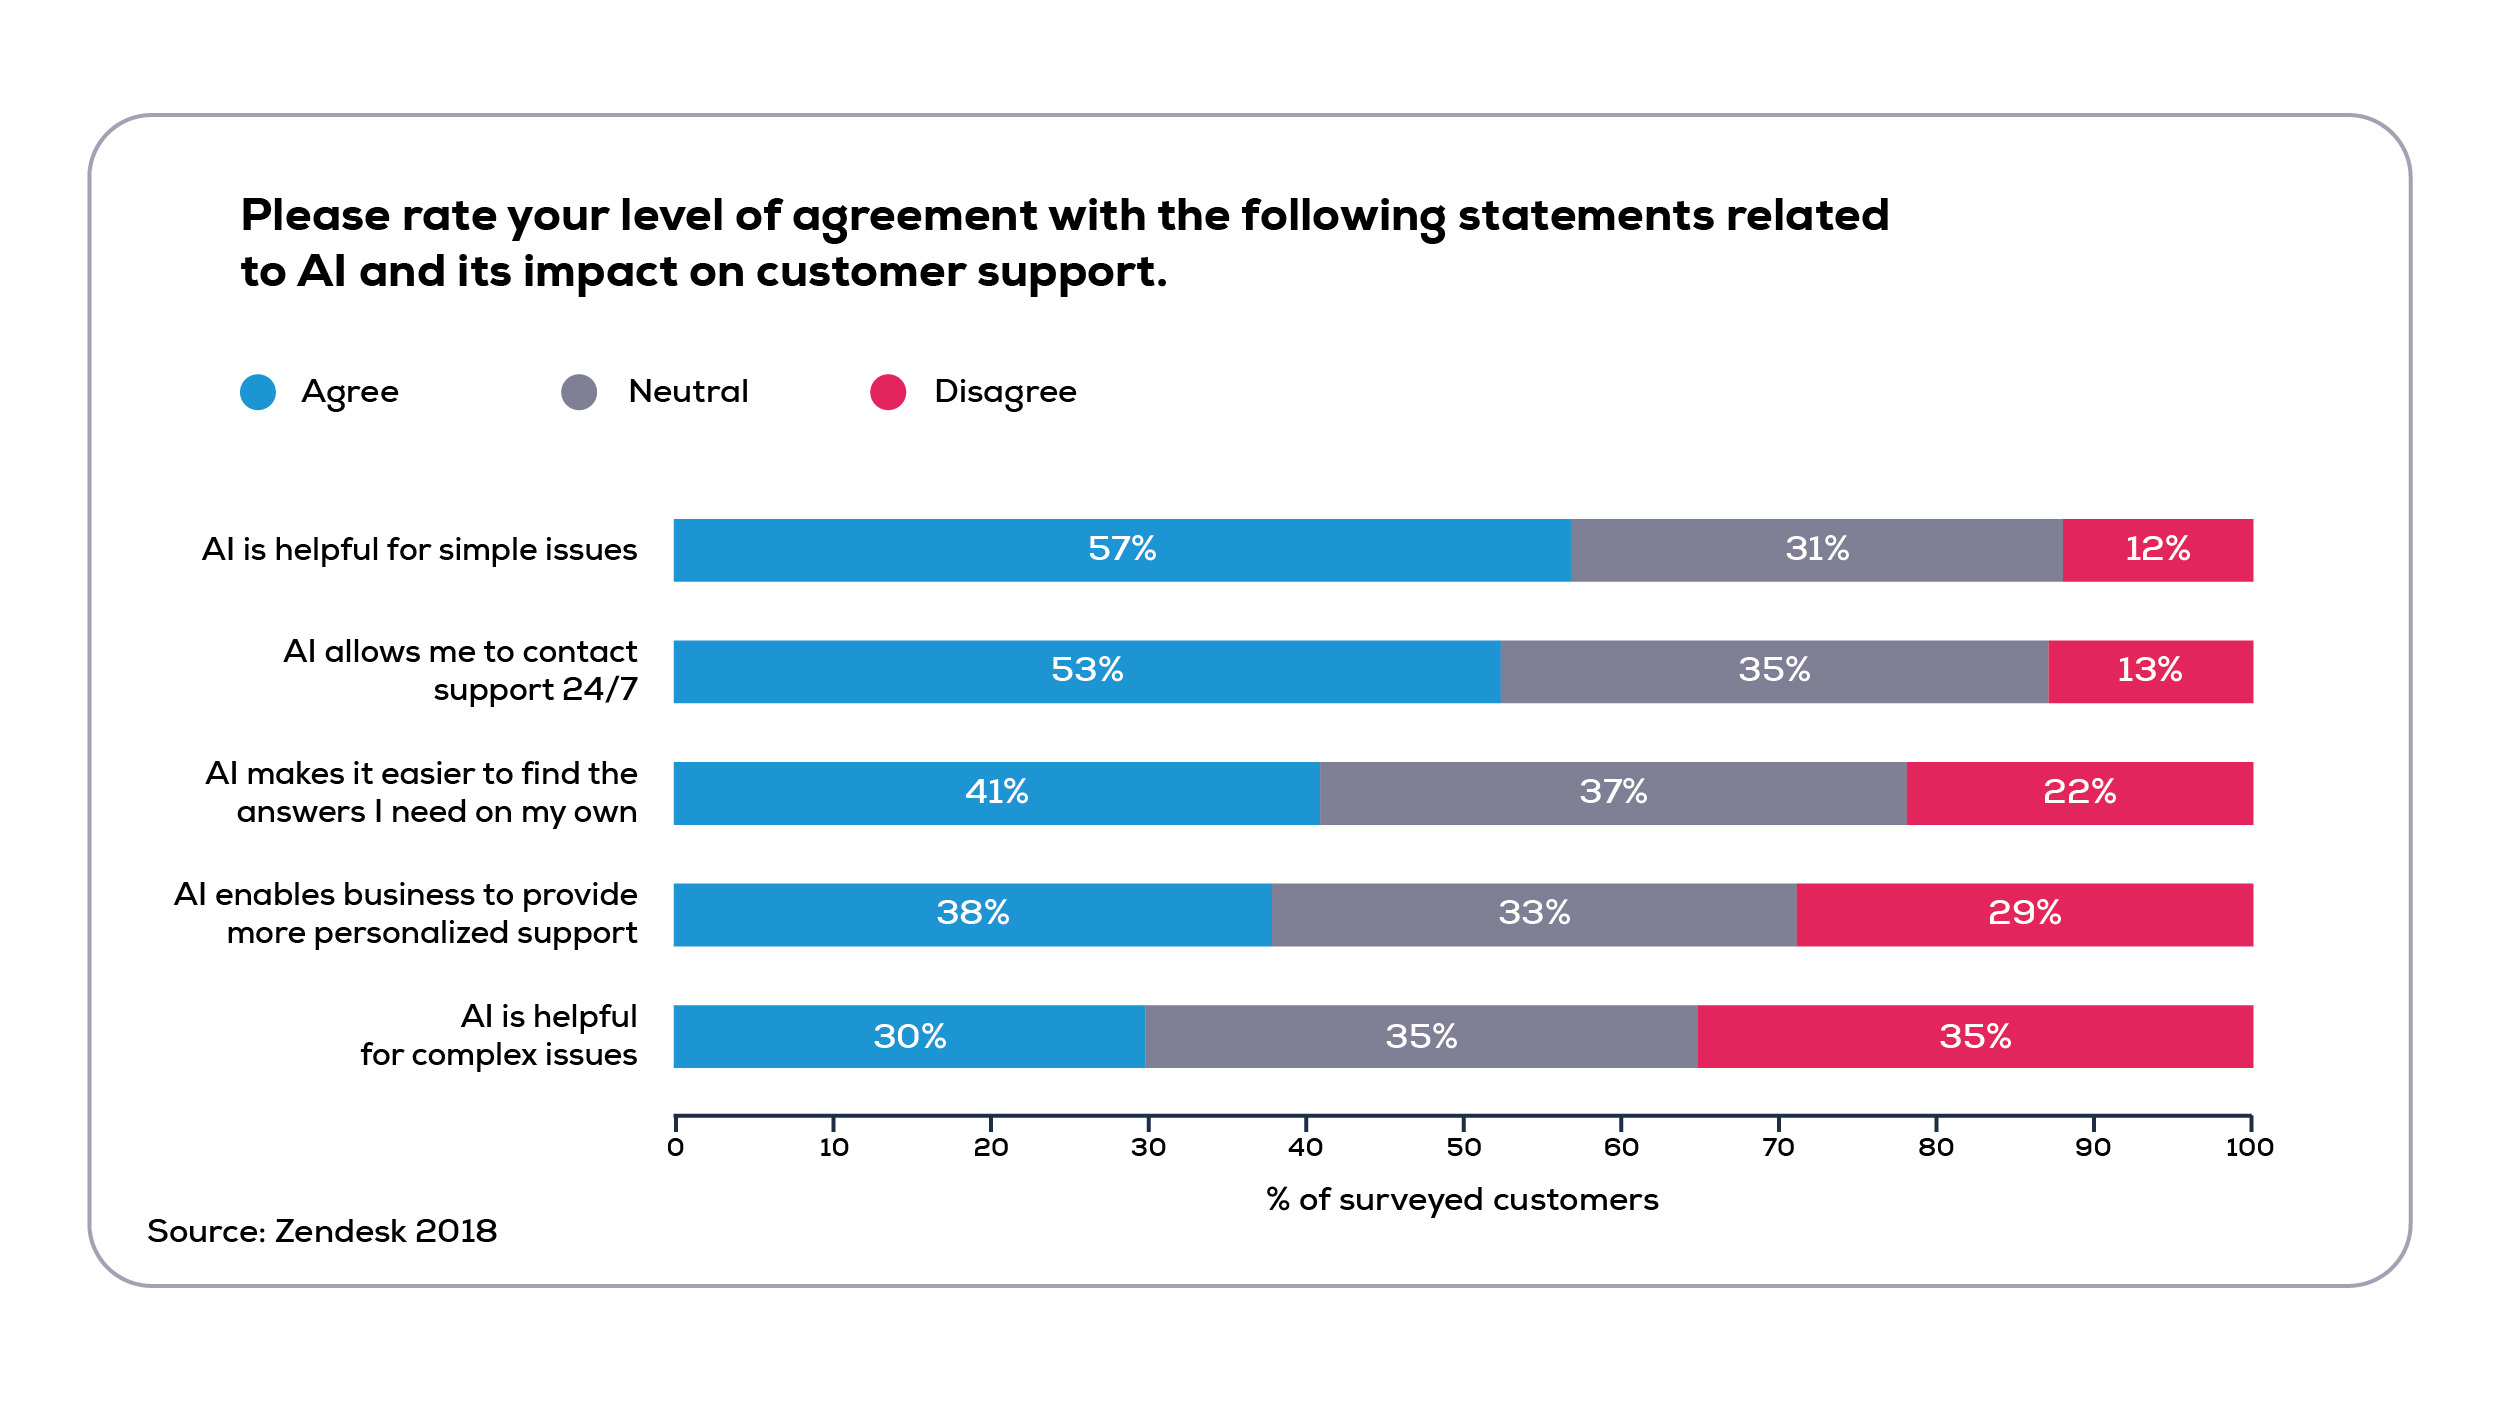 Consumers' perception of AI benefits in customer service